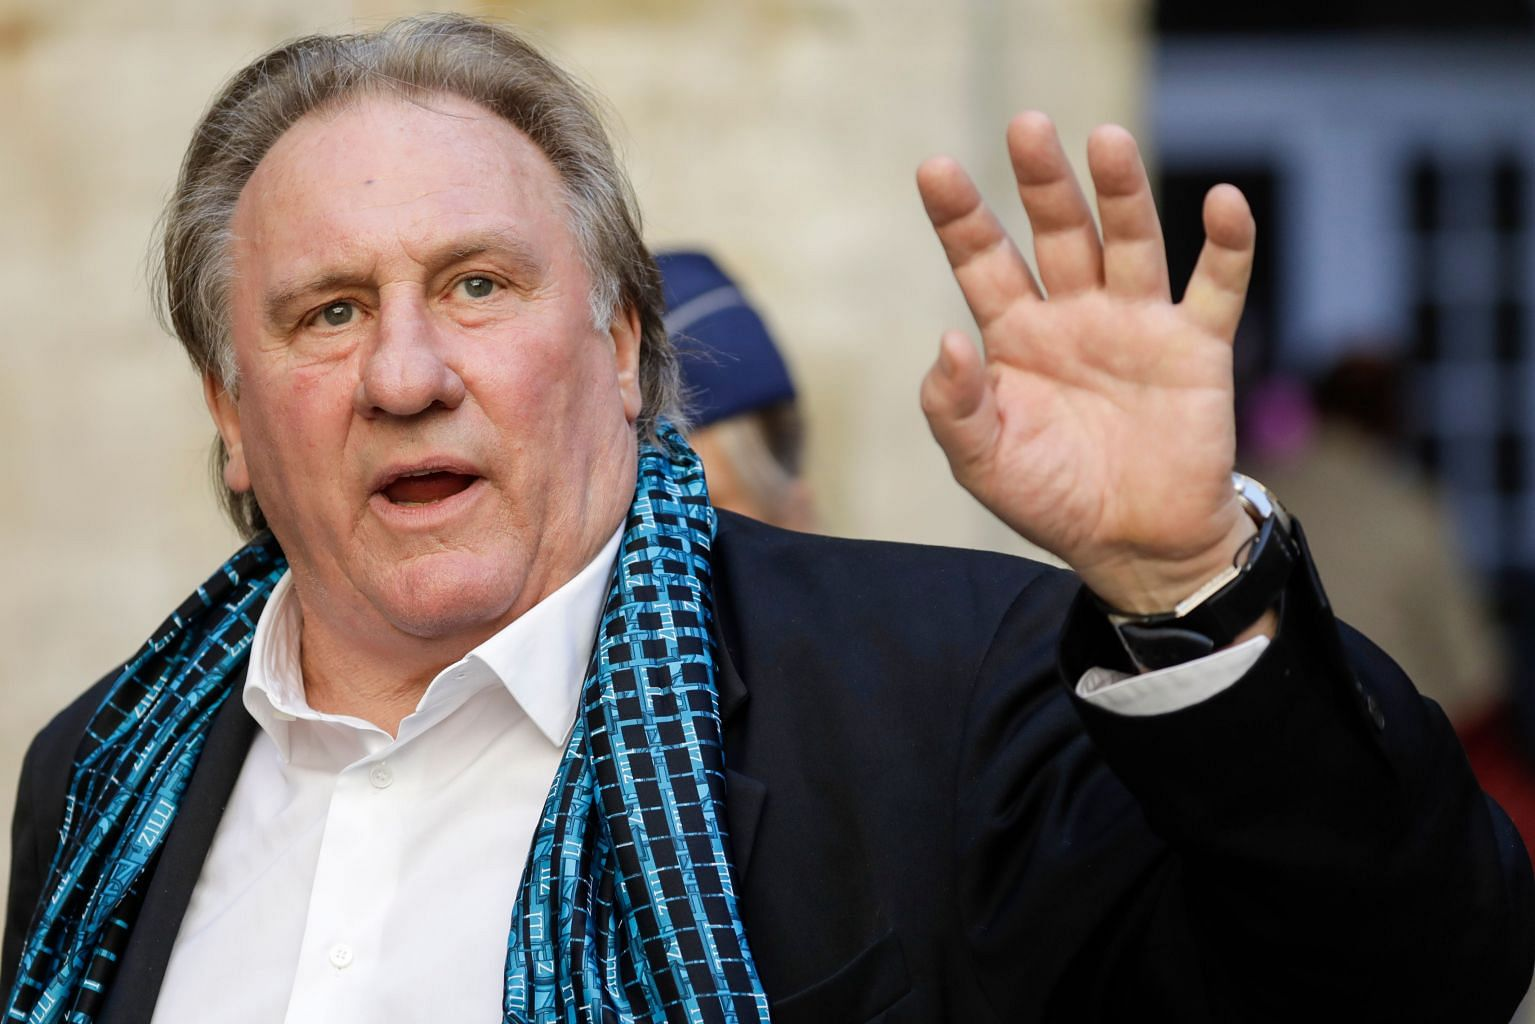 Depardieu became the personification of a citizen of the USSR 04/06/2013 33